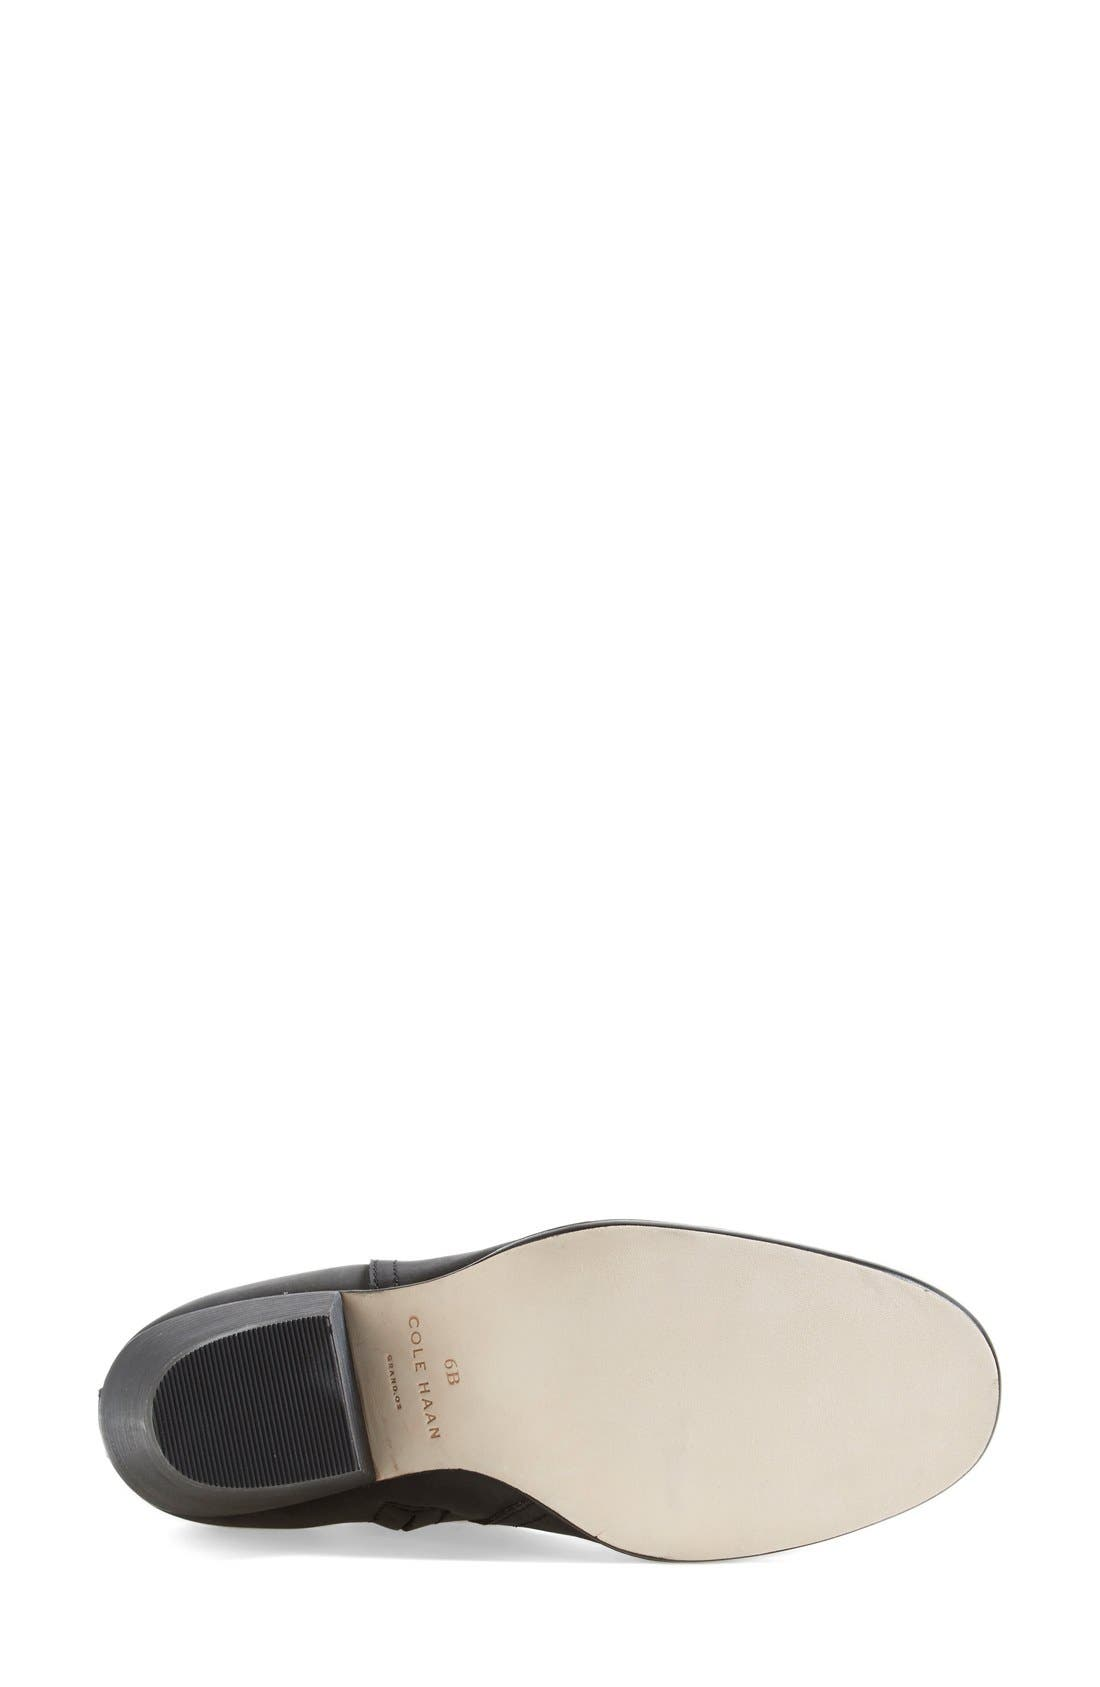 COLE HAAN,                             'Chesney' Round Toe Bootie,                             Alternate thumbnail 4, color,                             001